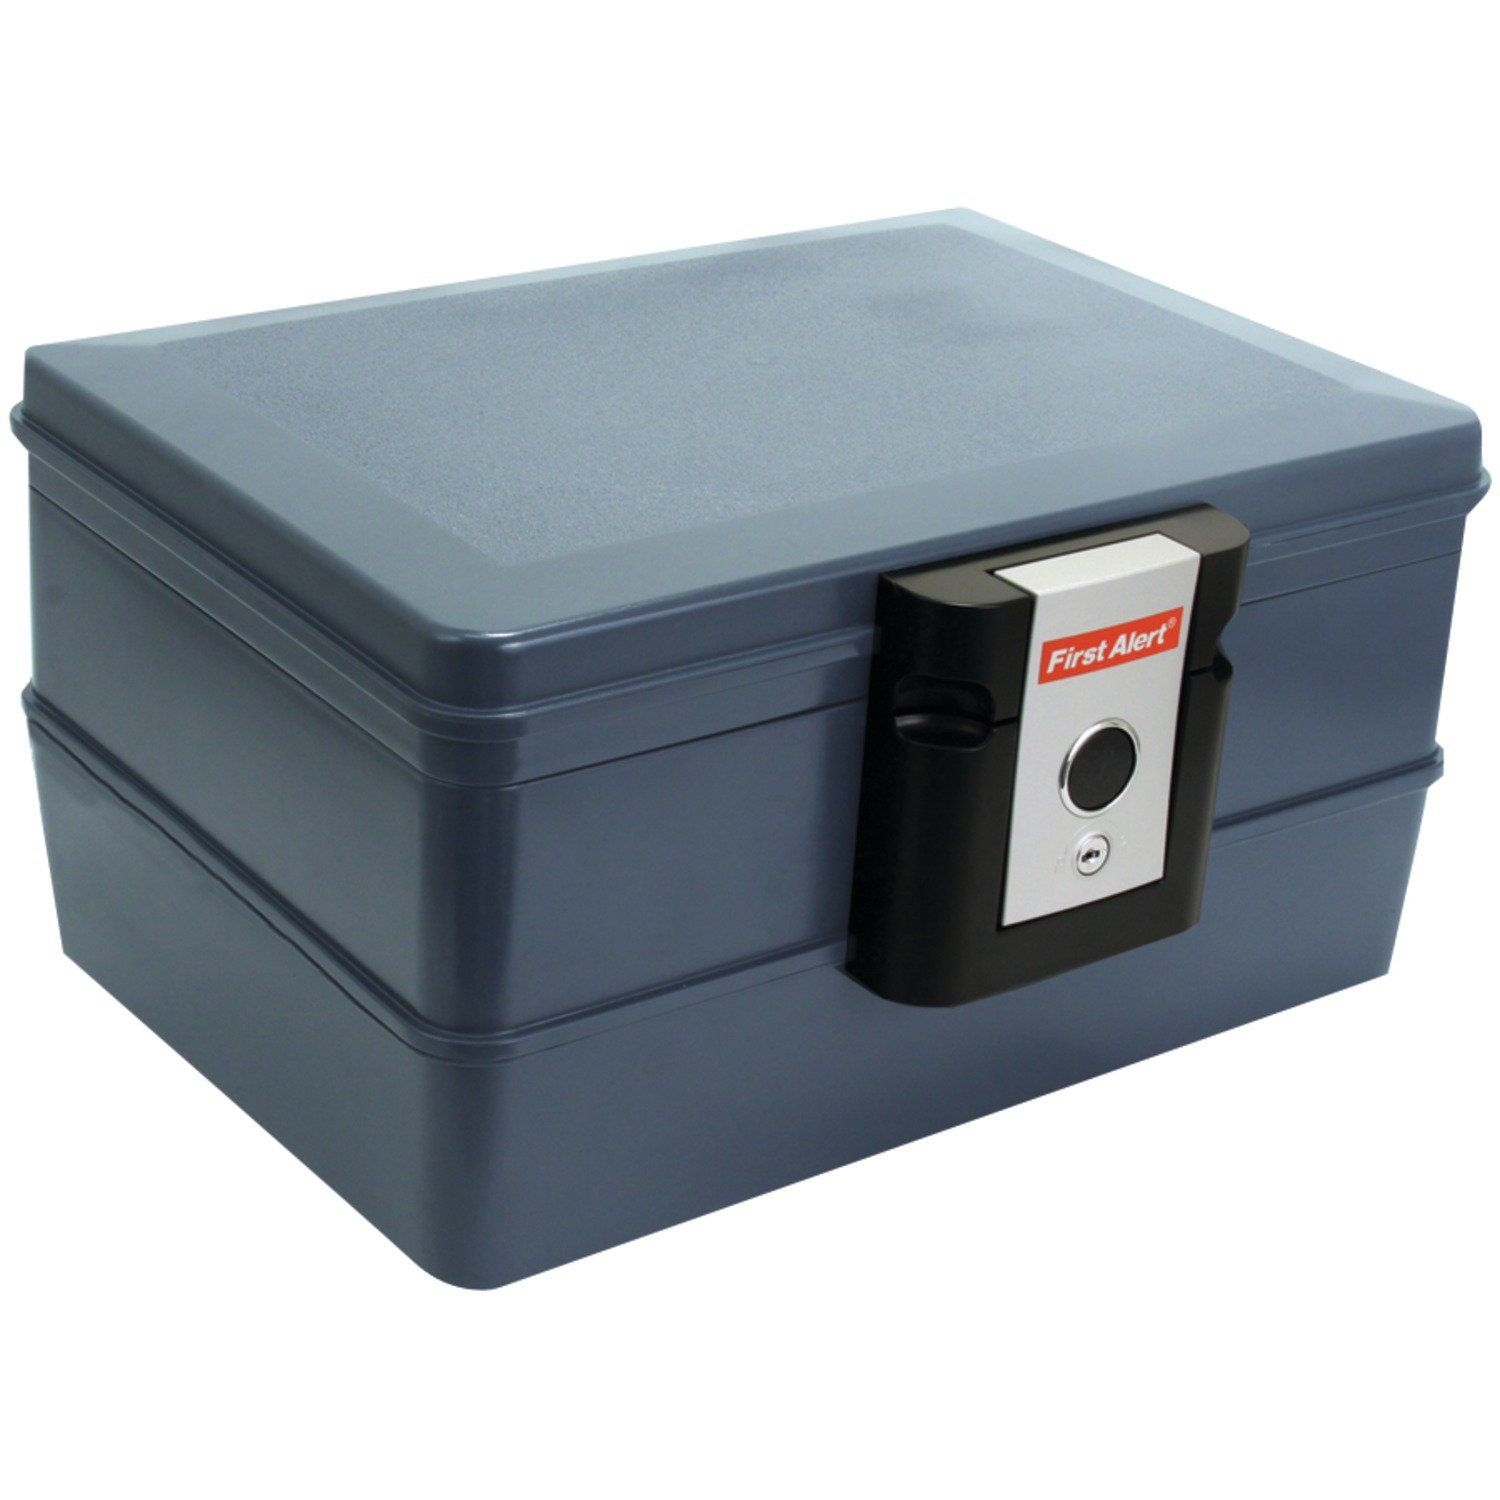 First Alert 2030f 0 39 Cubic Feet Fire And Water Safe Grey